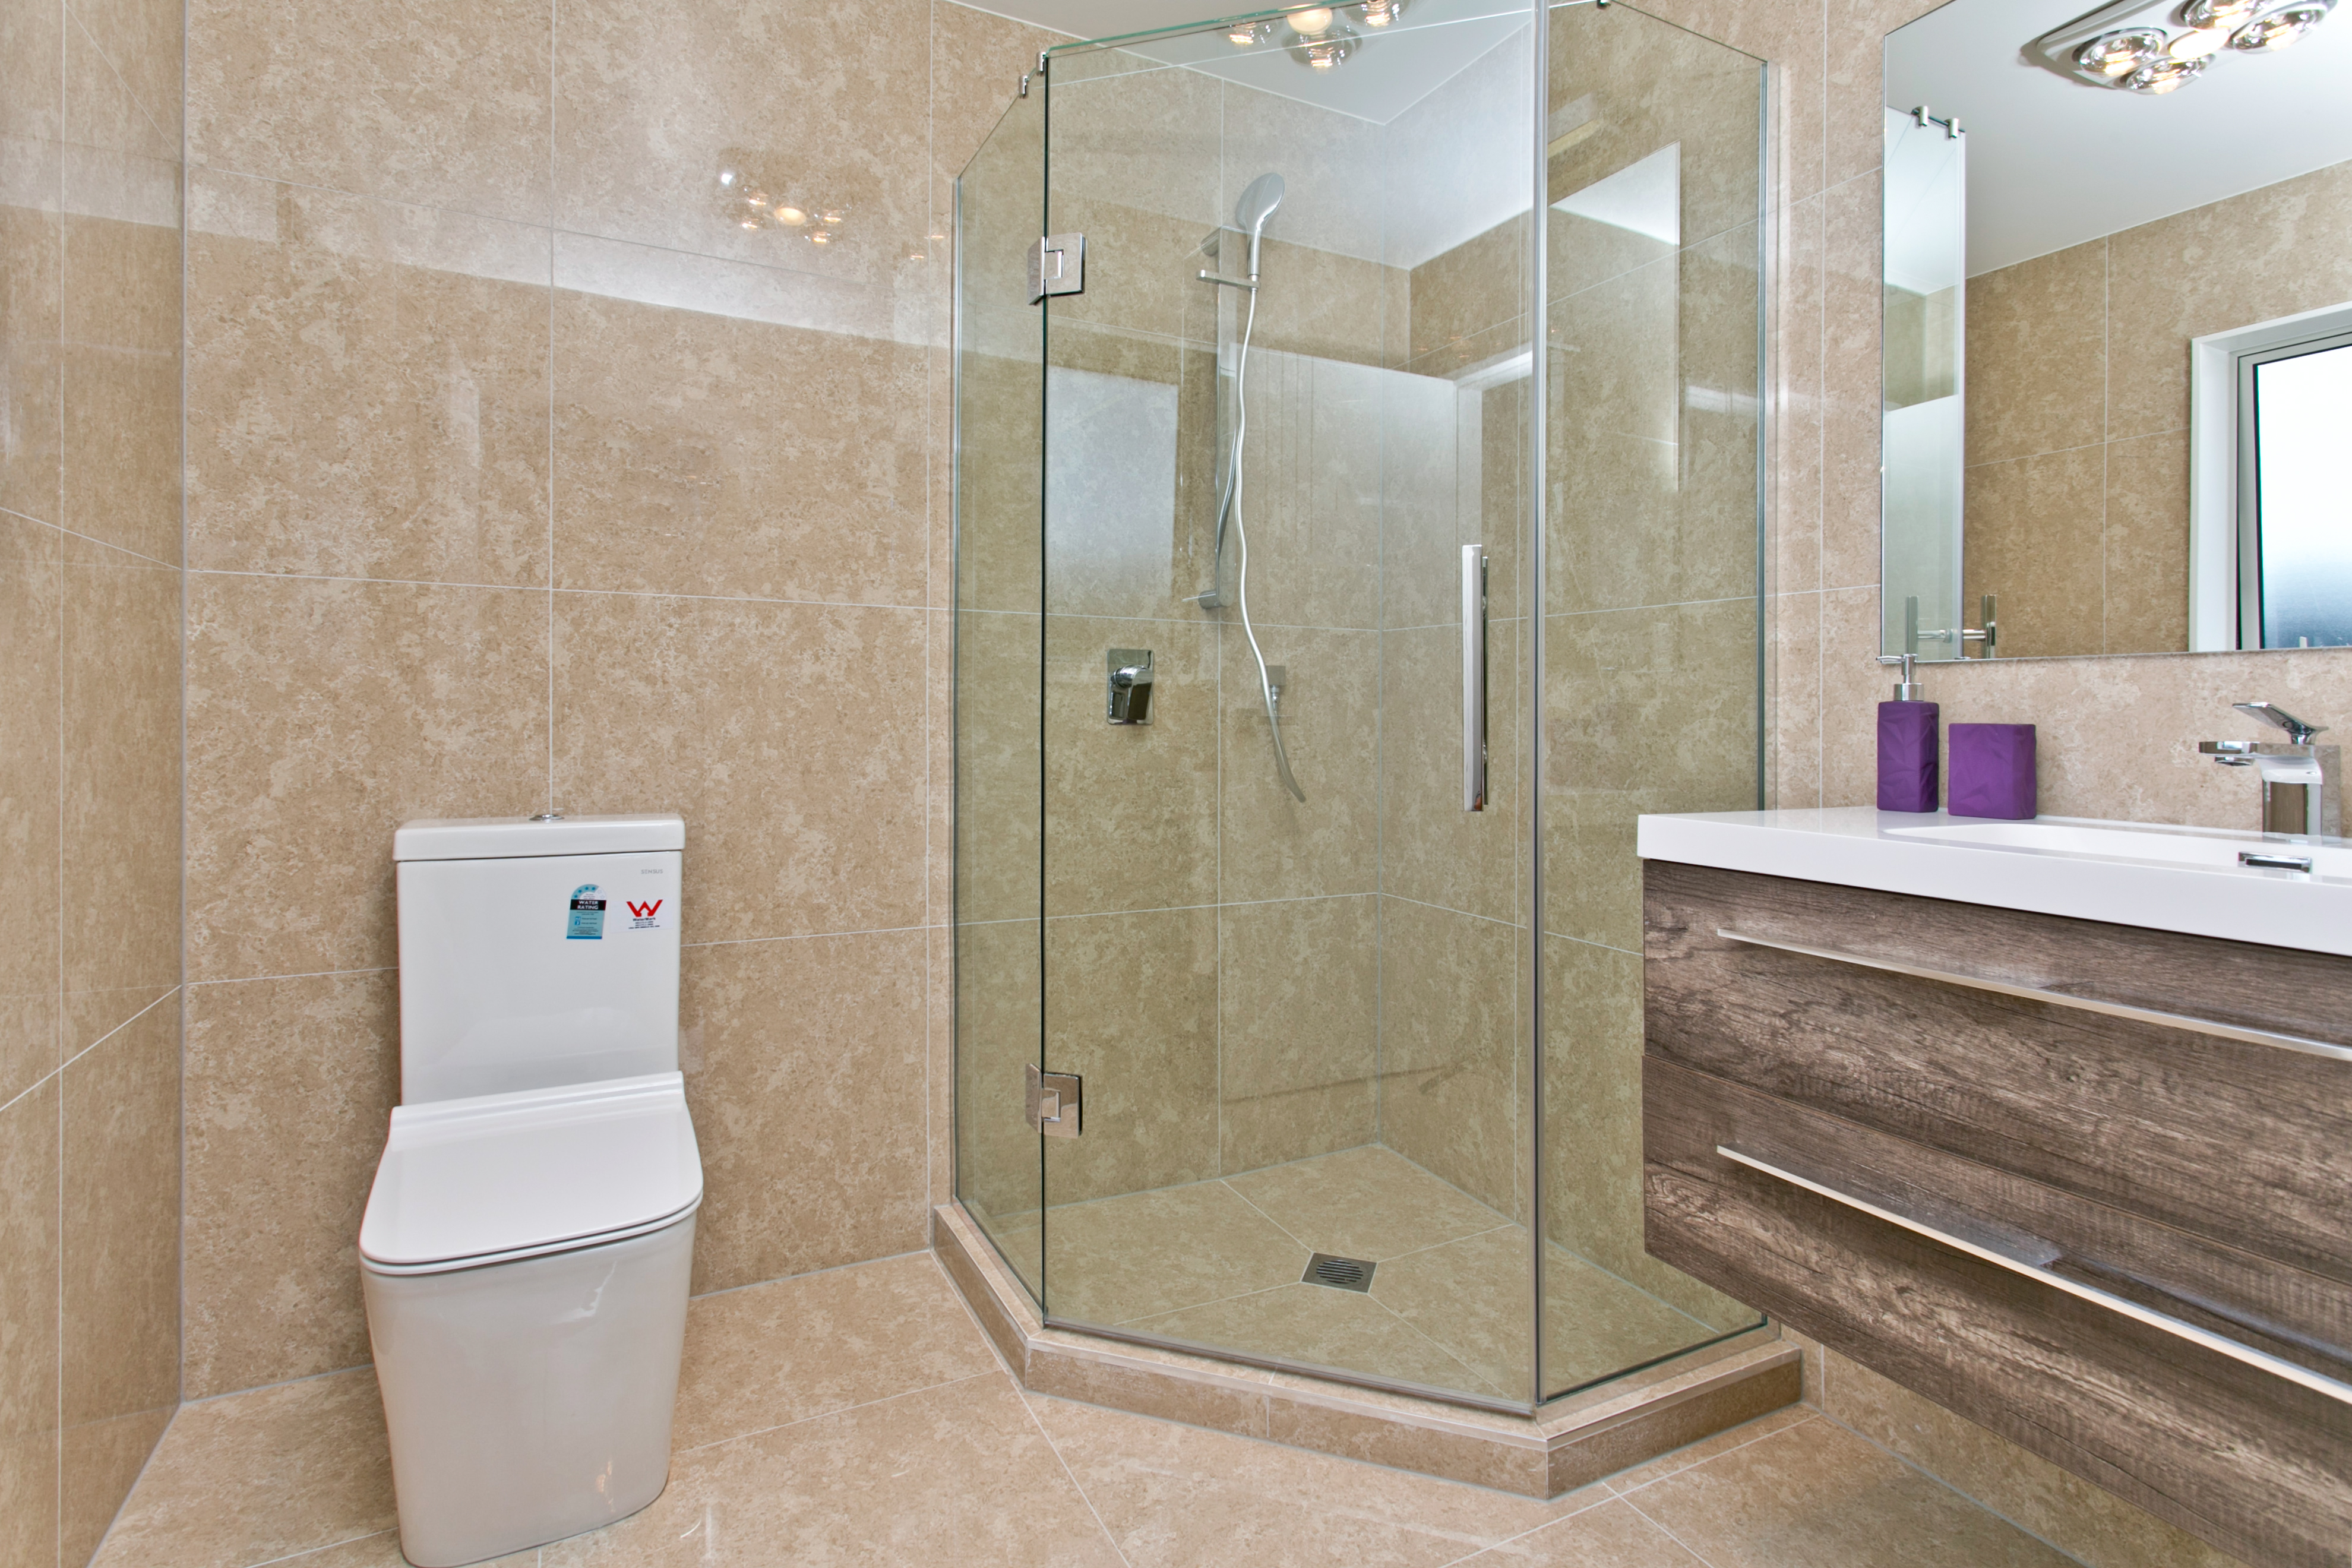 Bathroom Renovation Trends In For Auckland Homes Superior - Cost effective bathroom renovations